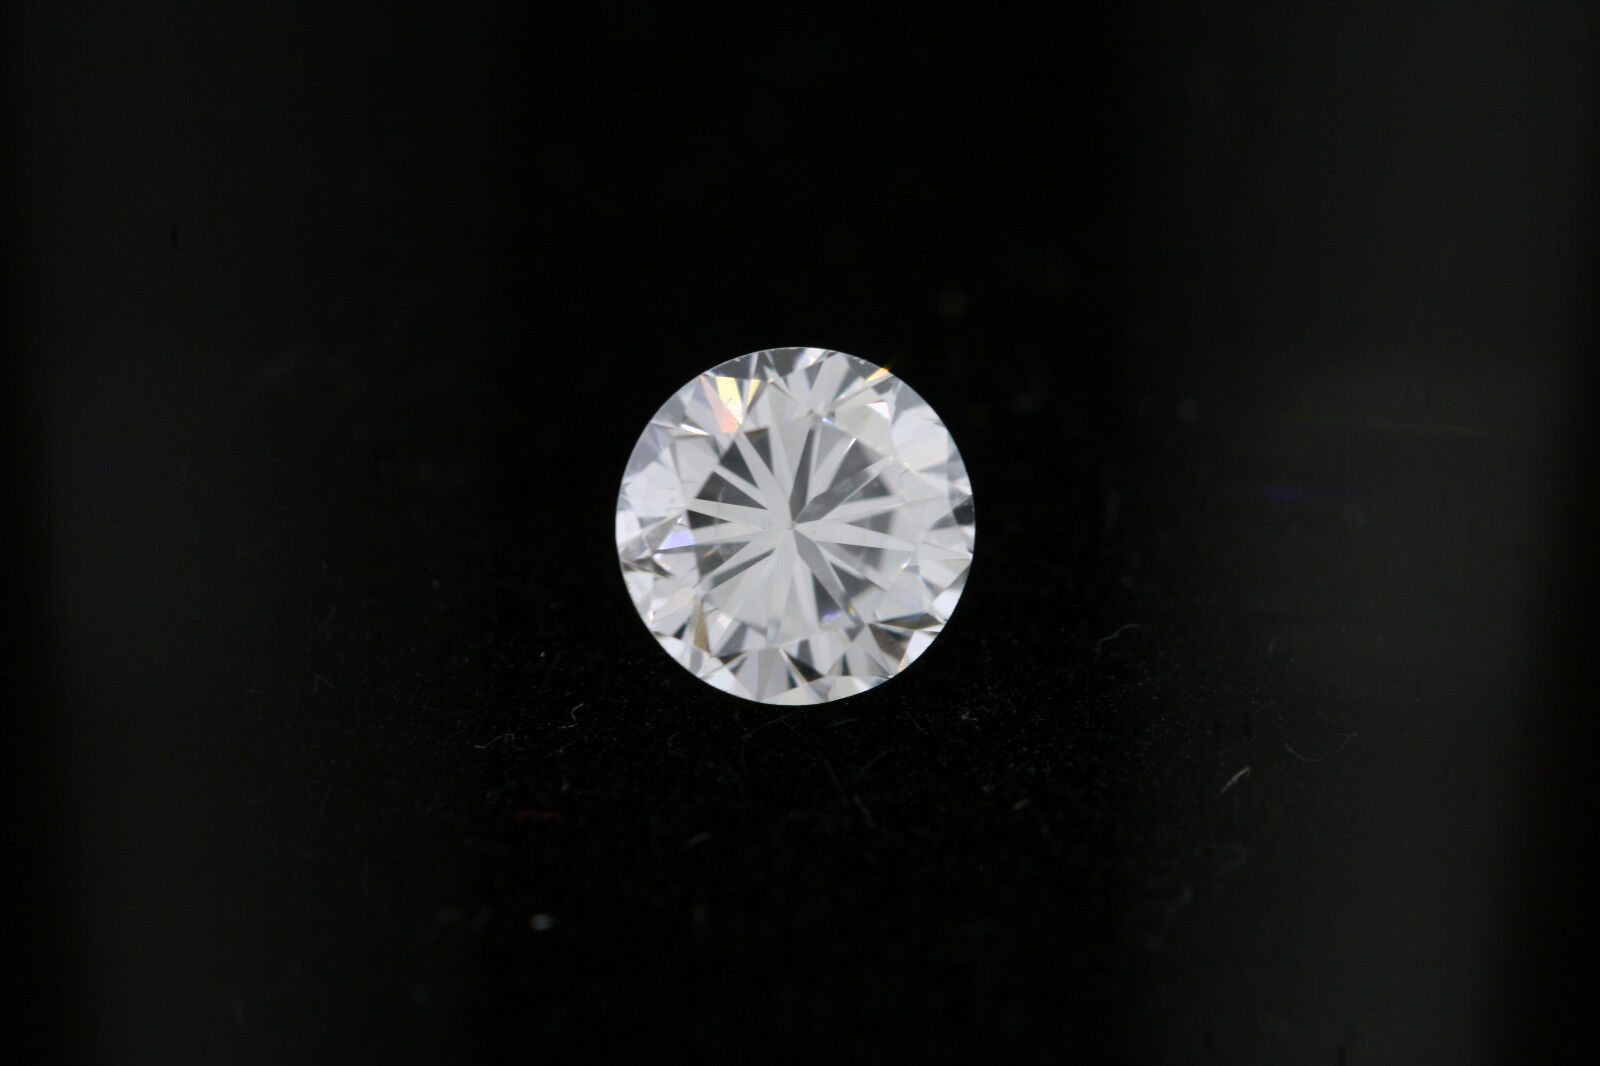 GIA .52ct Round Loose Diamond G color, SI1 clarity 5.01-5.05 x 3.28mm